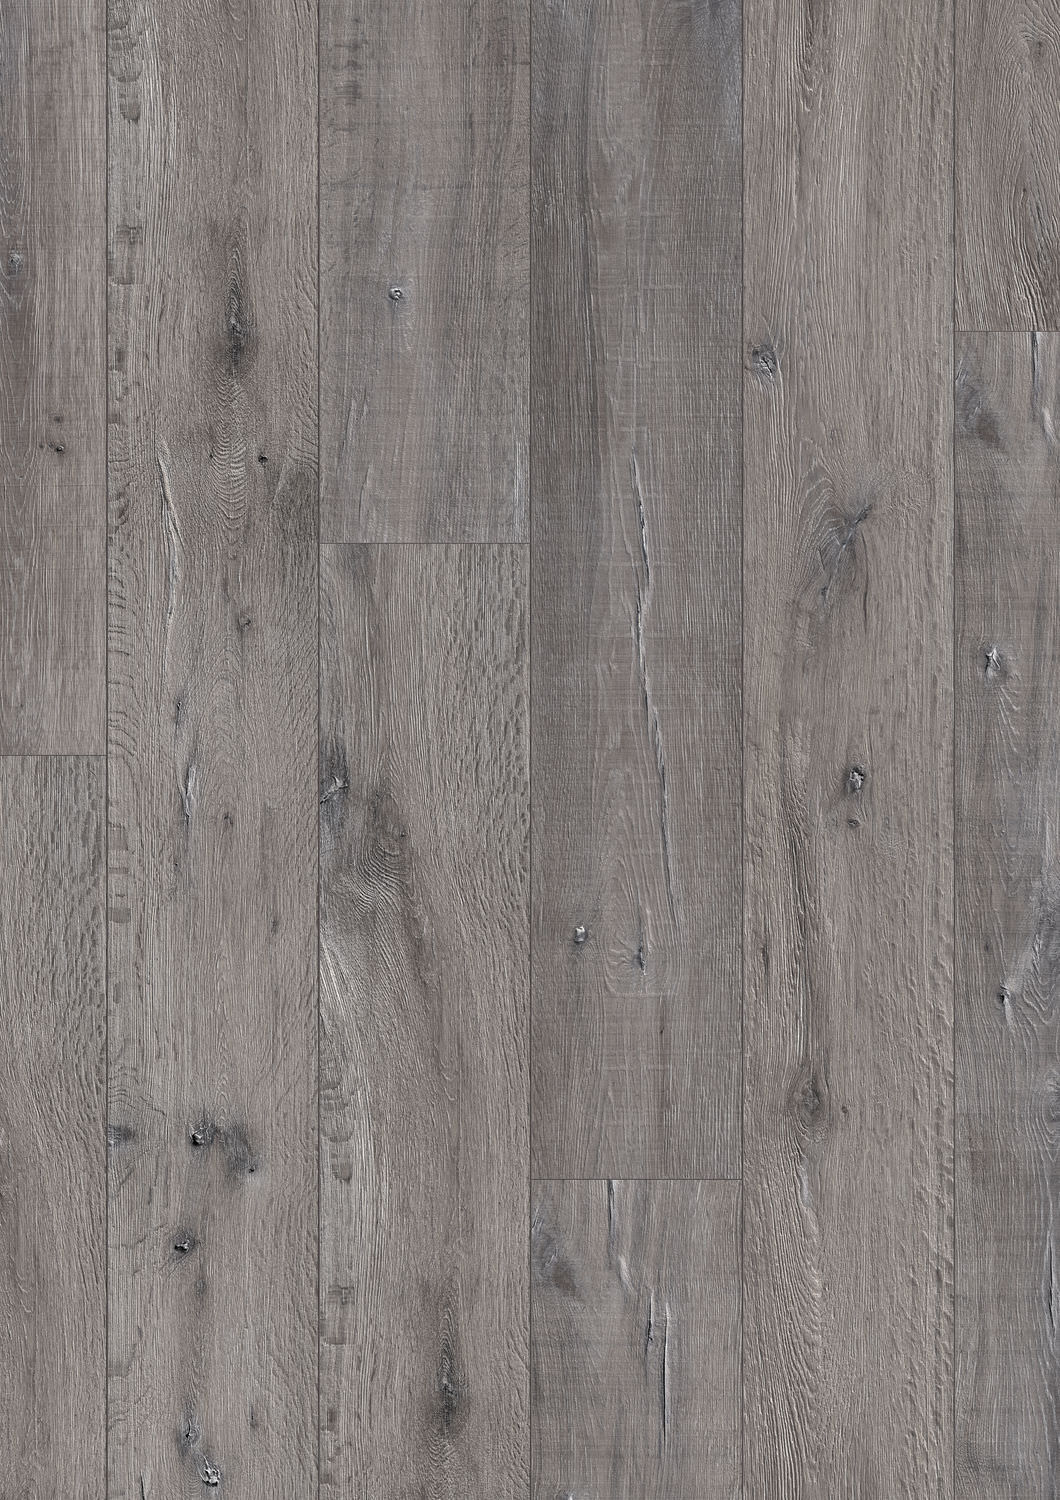 Hdf Laminate Flooring Fit Wood Look Tertiary Reclaimed Grey Oak L0223 01760